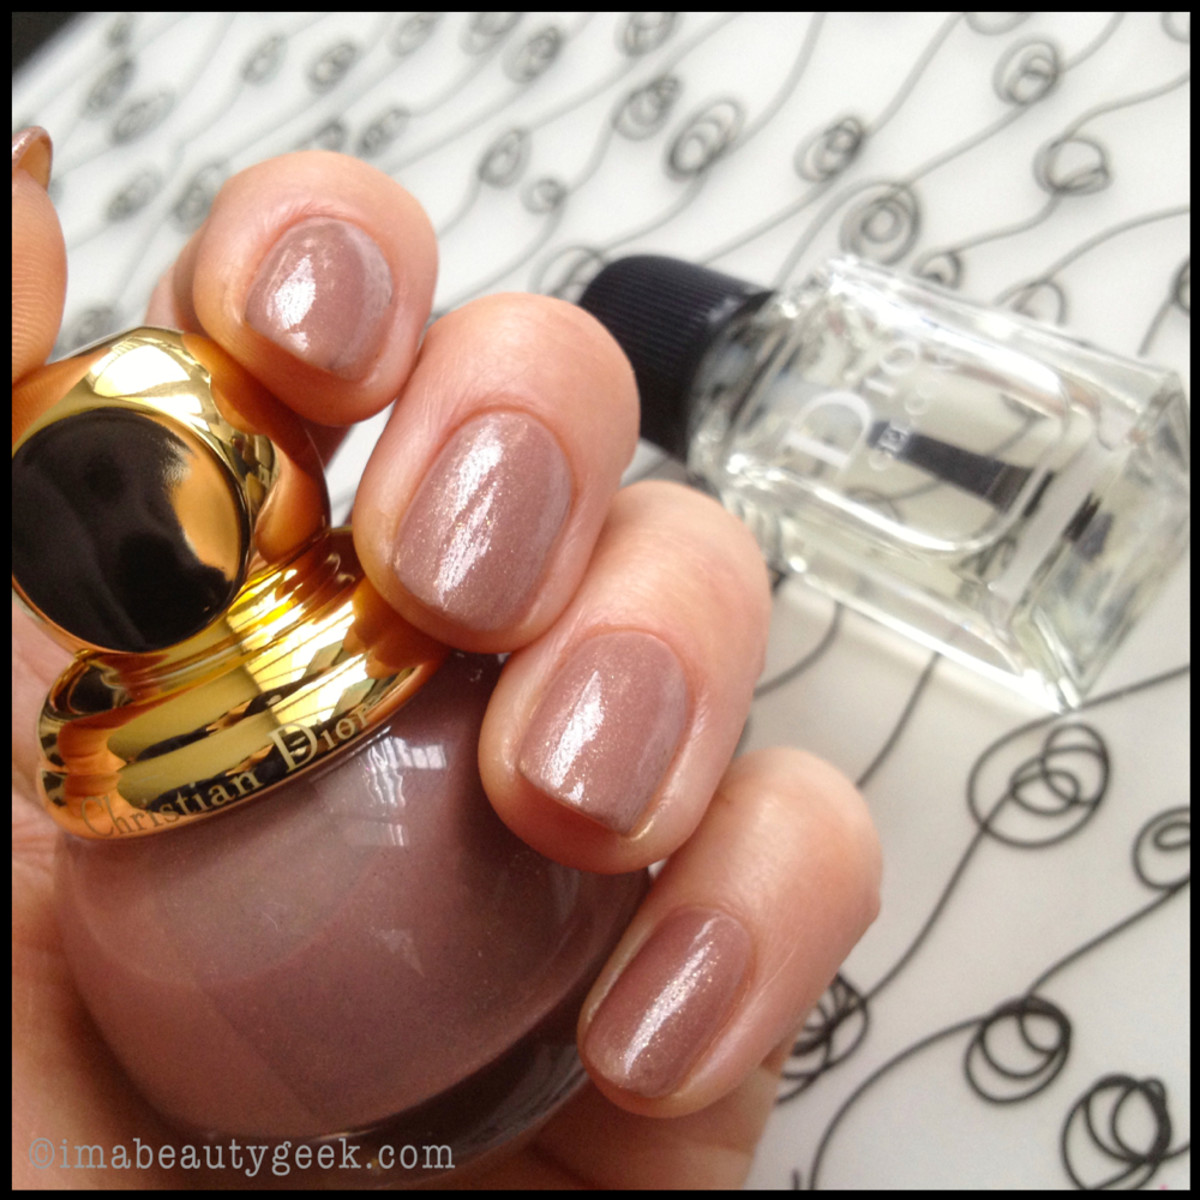 Dior Holiday 2013 Dior Diorific Vernis in Frimas 2